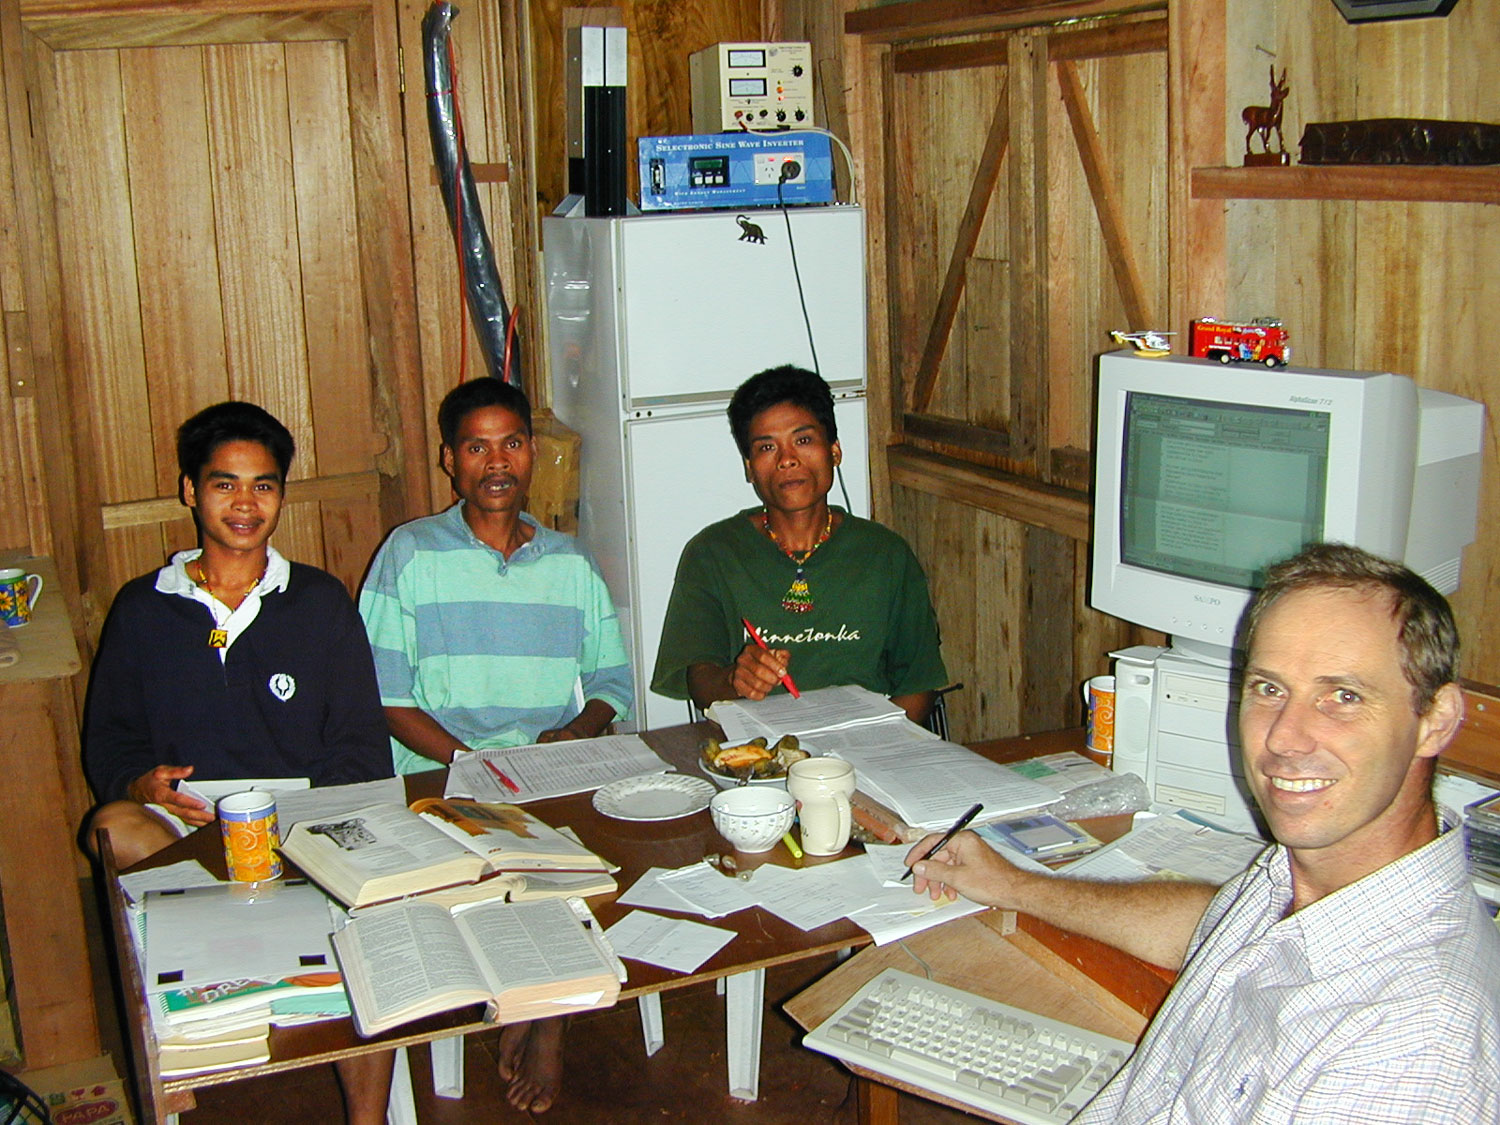 NTM's consultants give encouragement, direction and vital tools to missionaries.